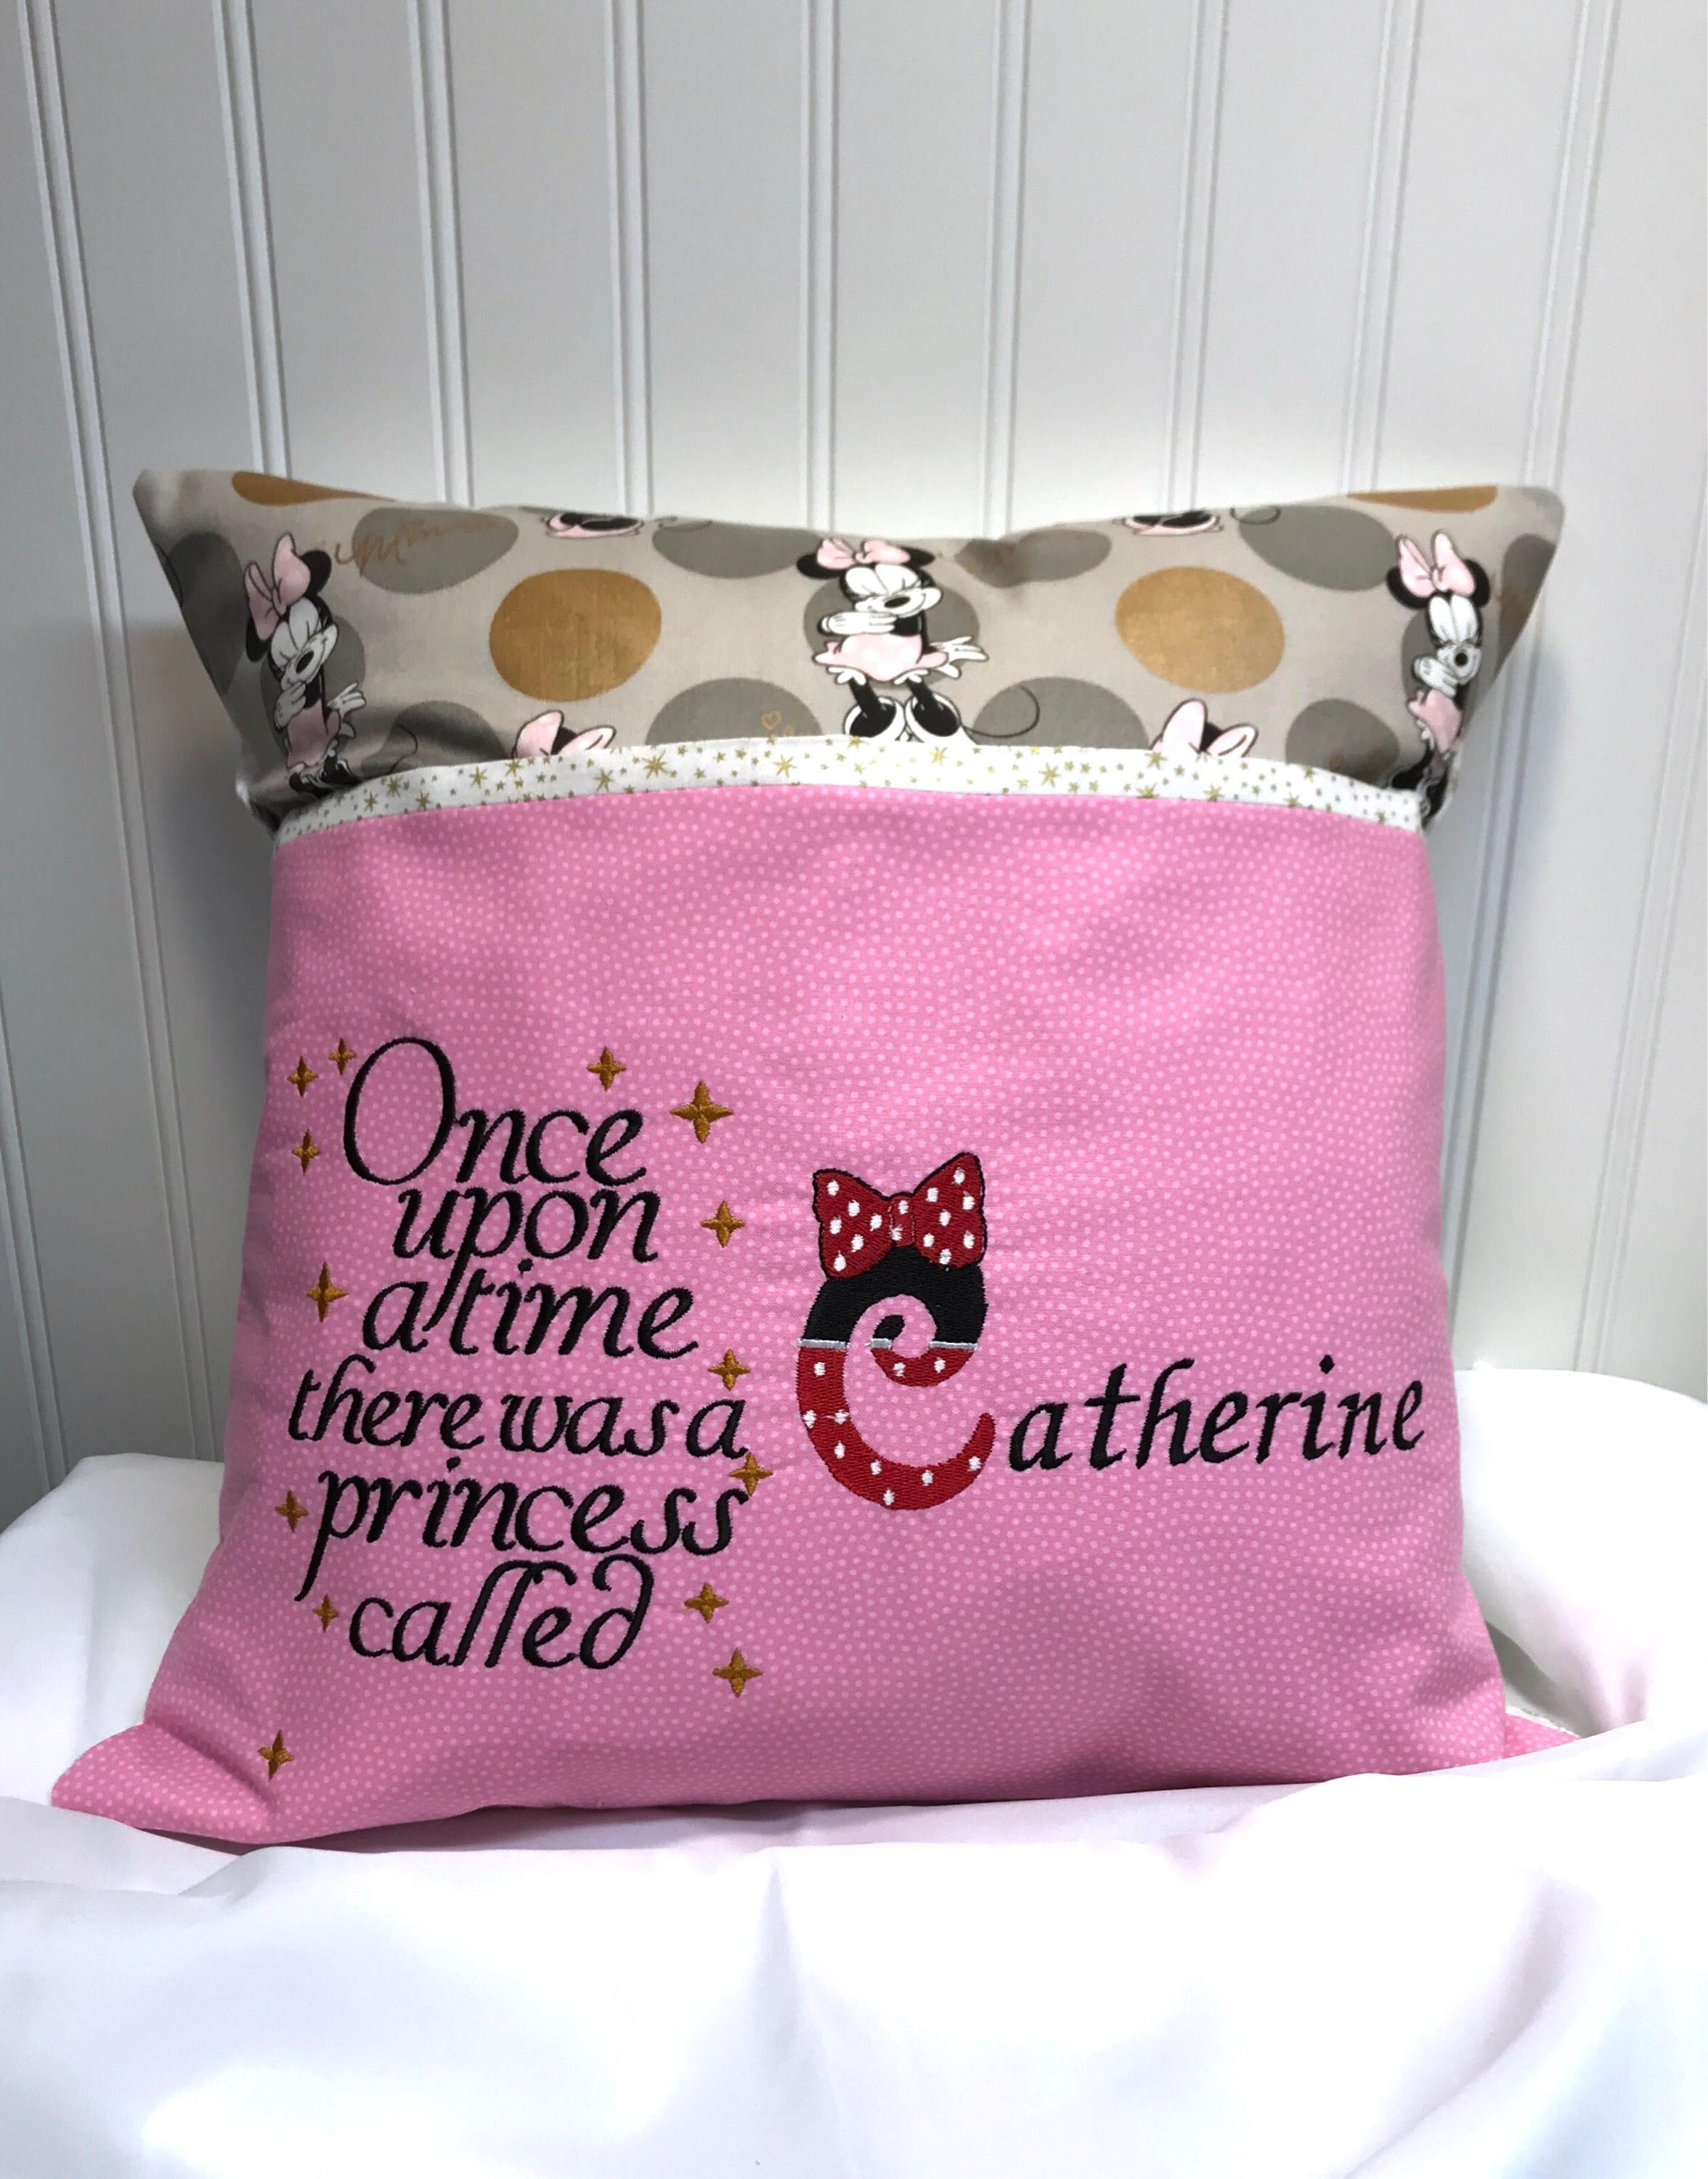 cushion annoucment gallery personalized pillow pillows birth gifts decor blanket baby home